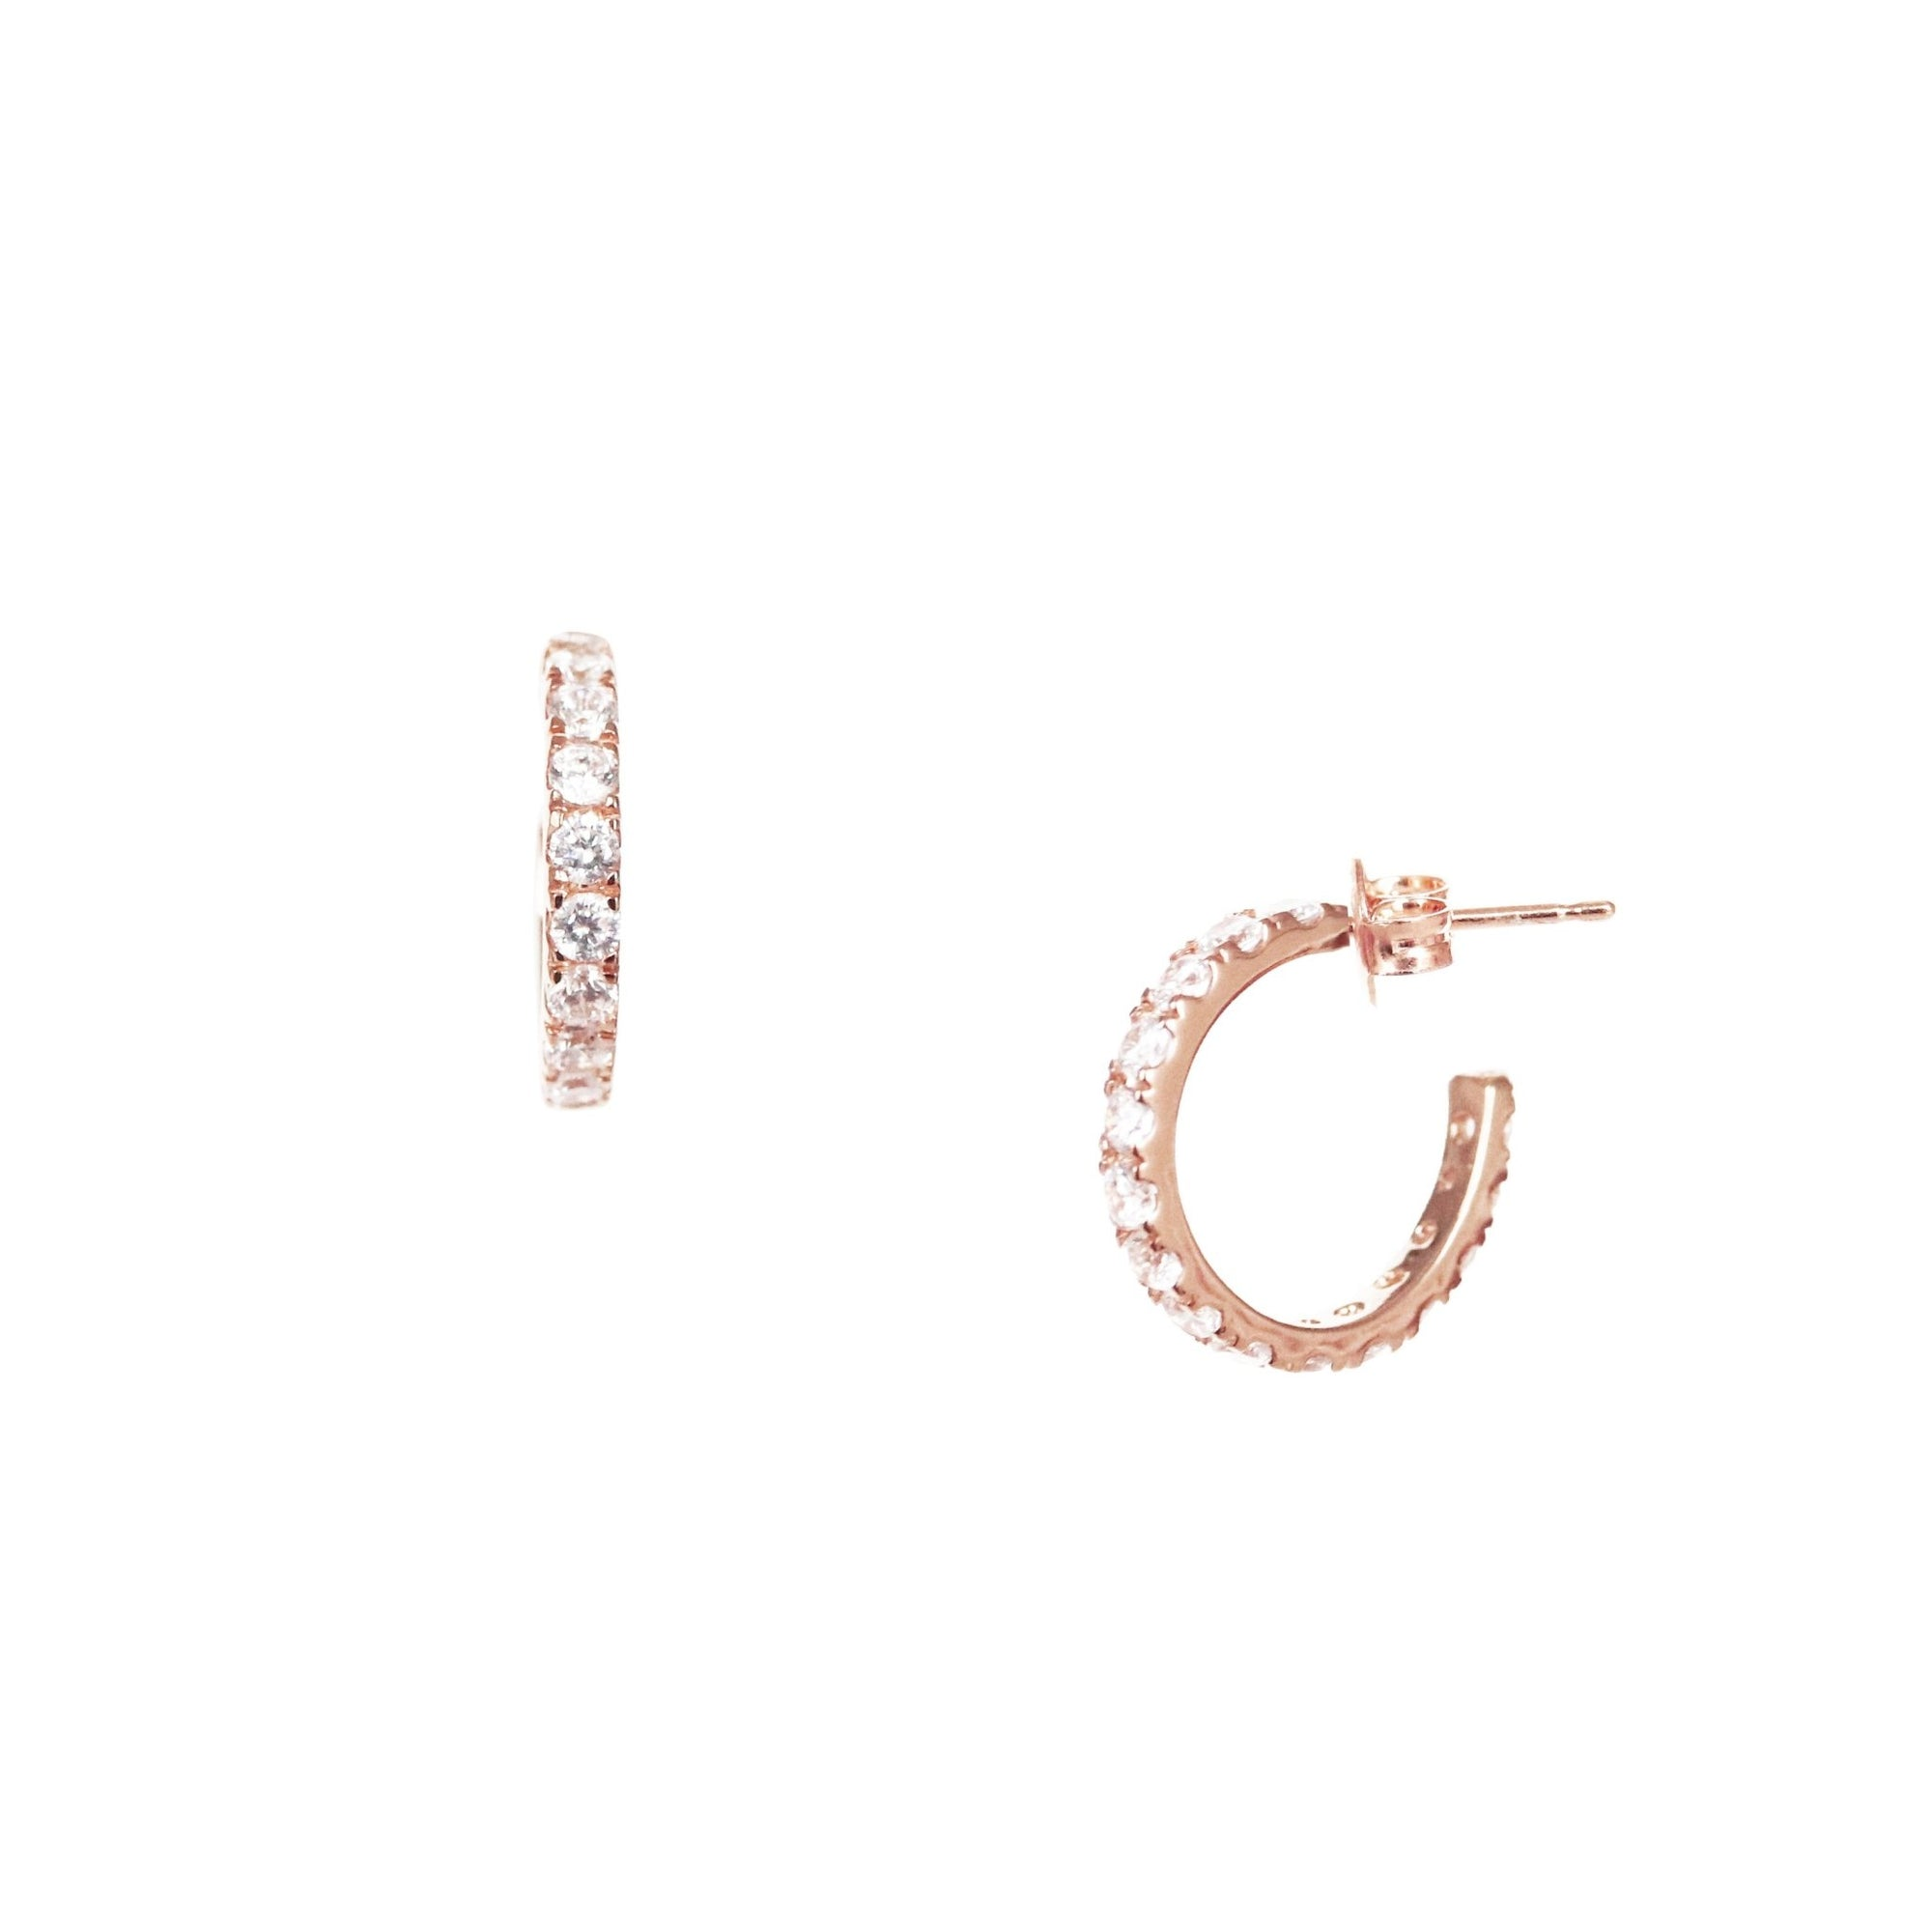 LOVE HUGGIE HOOPS - CUBIC ZIRCONIA & ROSE GOLD - SO PRETTY CARA COTTER